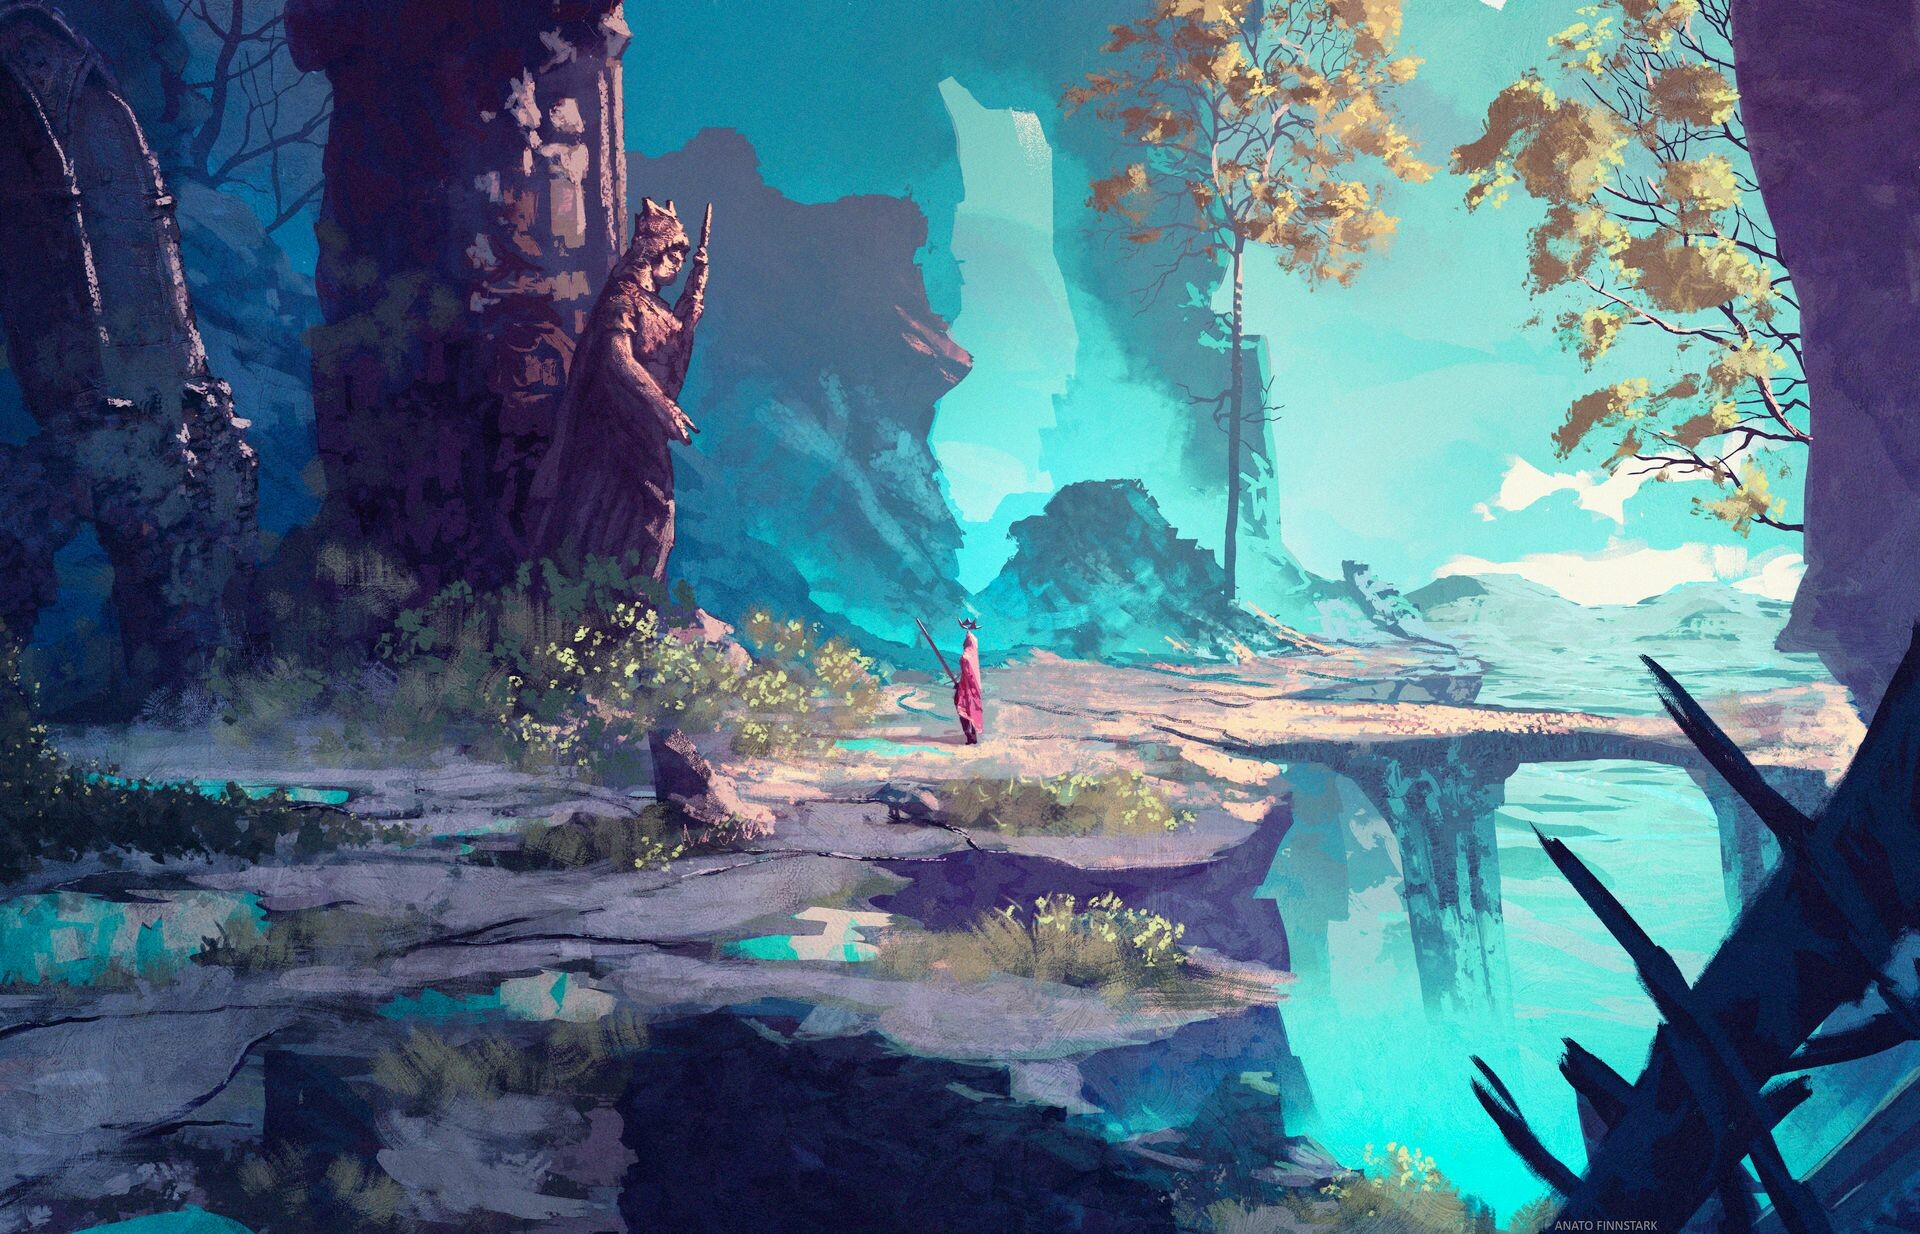 Anato finnstark the king s journey the remains of the past by anatofinnstark dcyyeke fullview